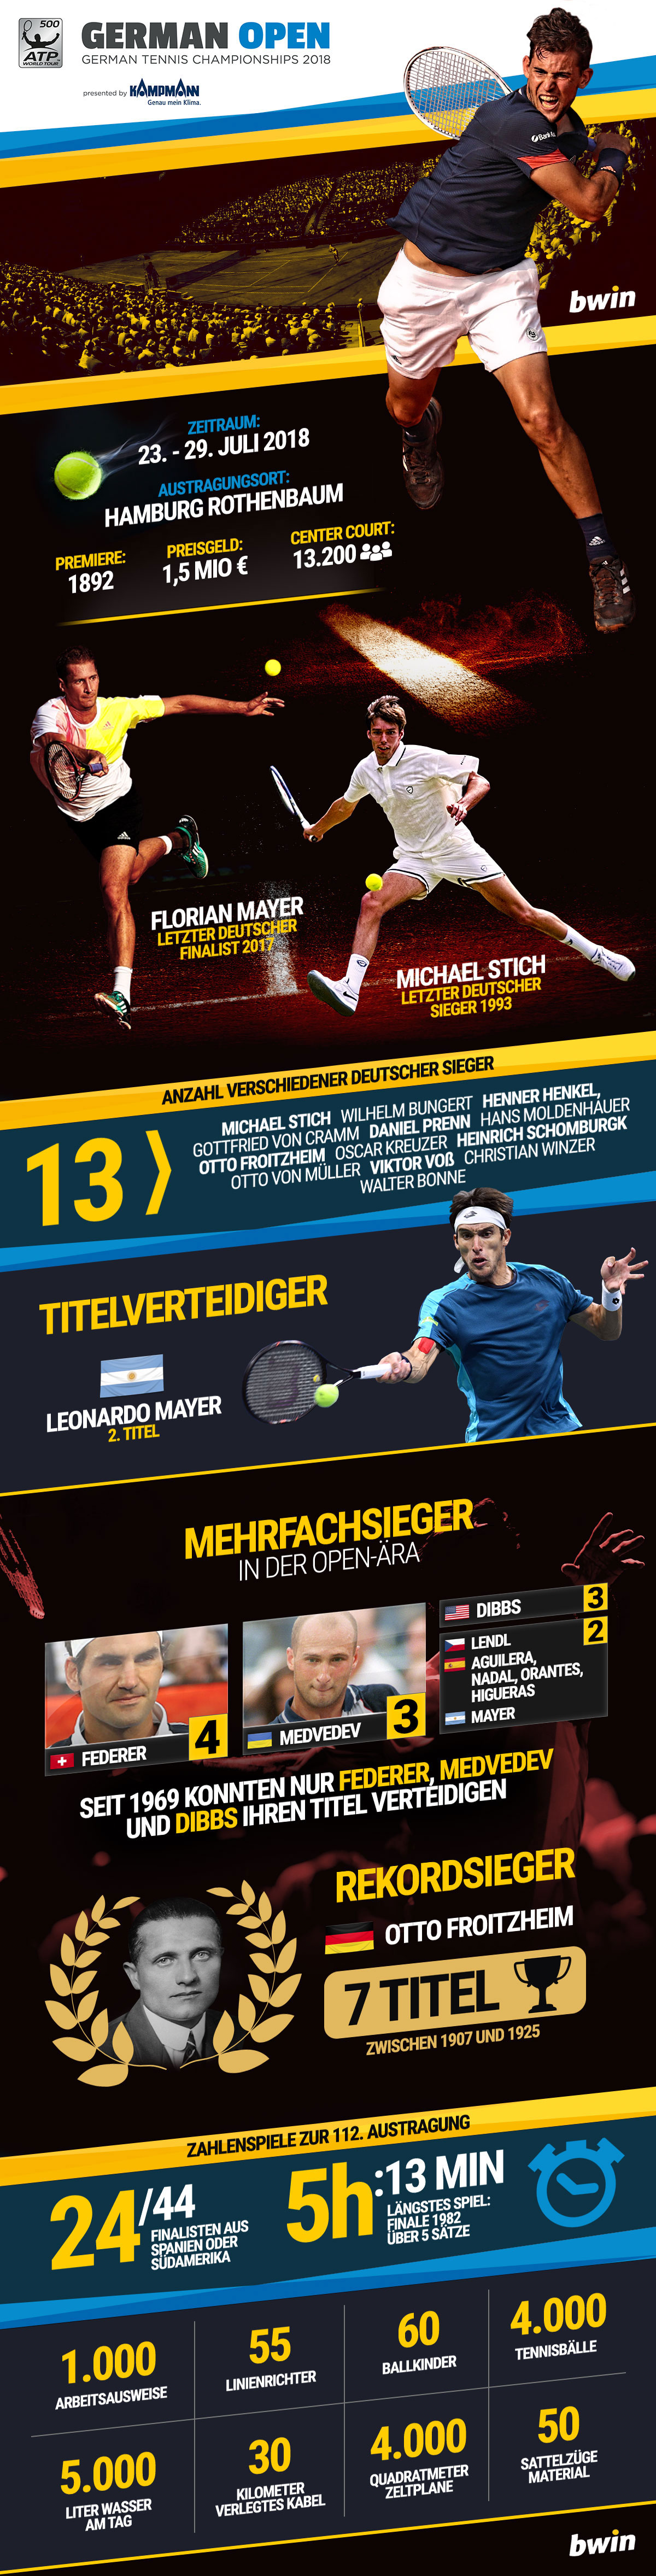 German Open, Hamburg Rothenbaum Infografik